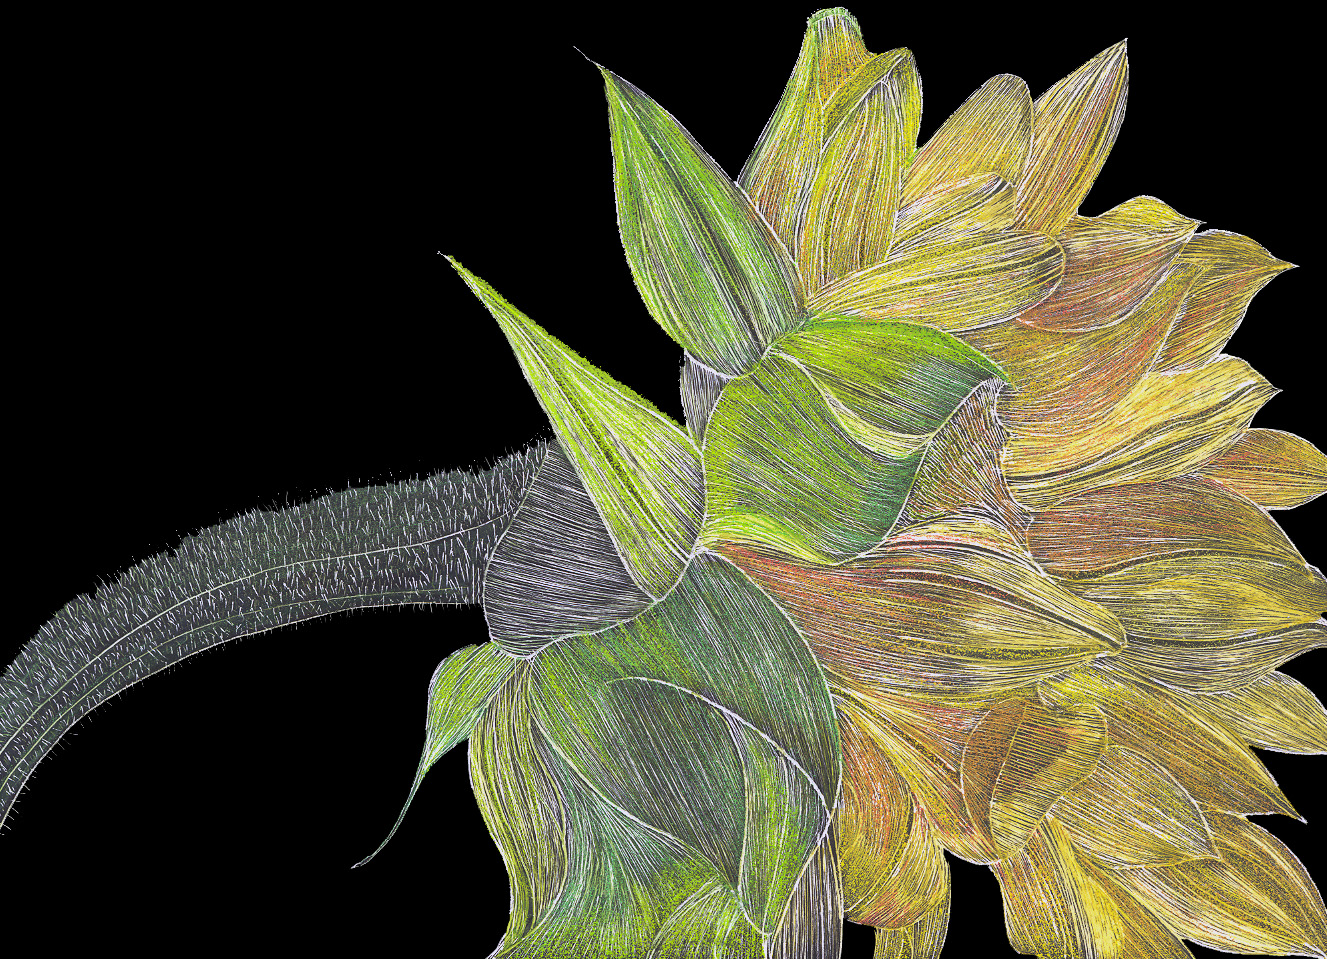 #29 Sunflower 18x16 Scratchbord & Prismacolor Pencils $900.jpg